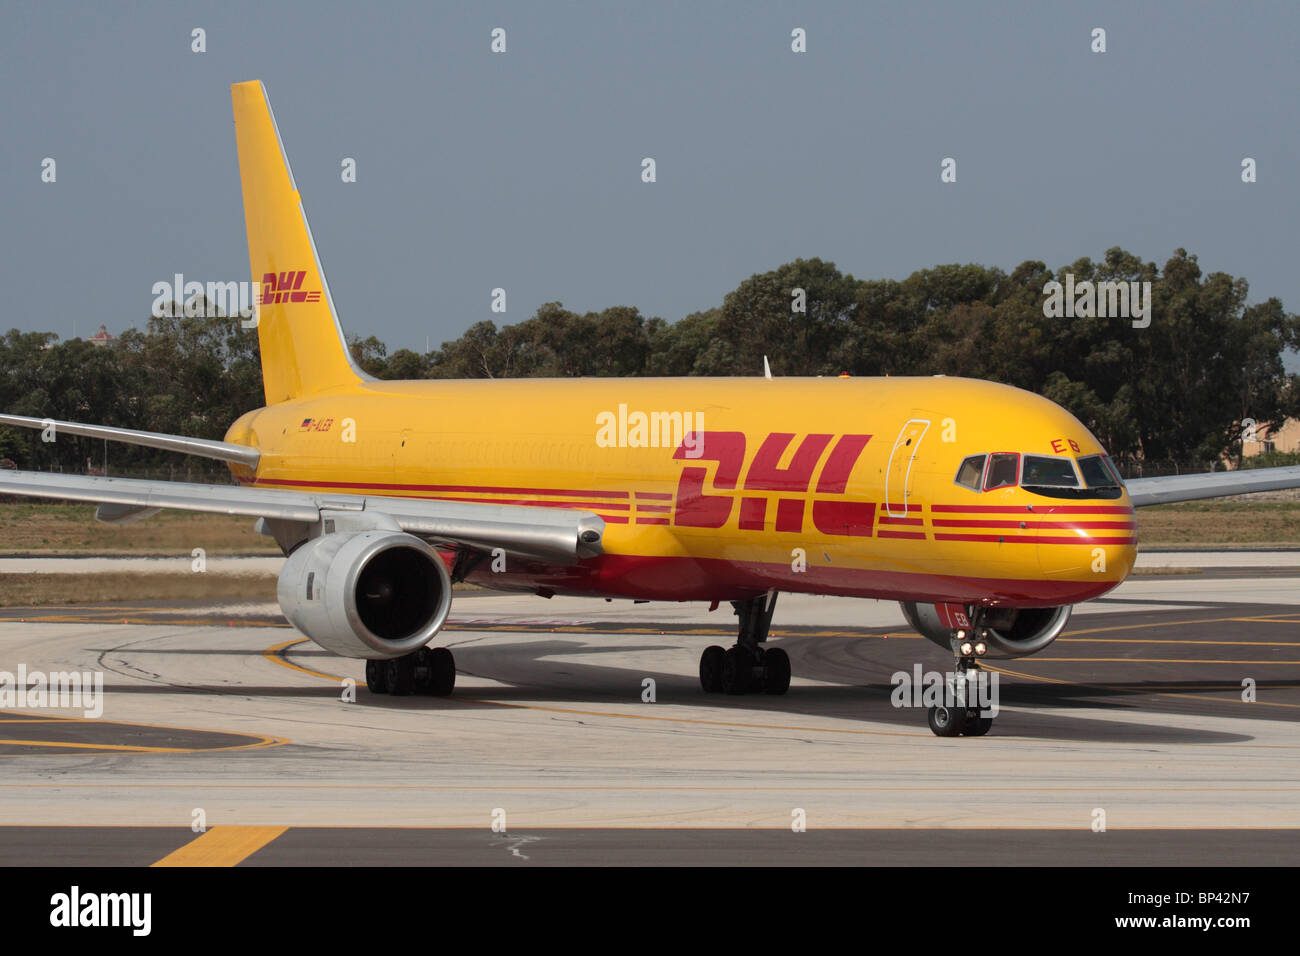 Air freight delivery  DHL Boeing 757-200F cargo plane on arrival at